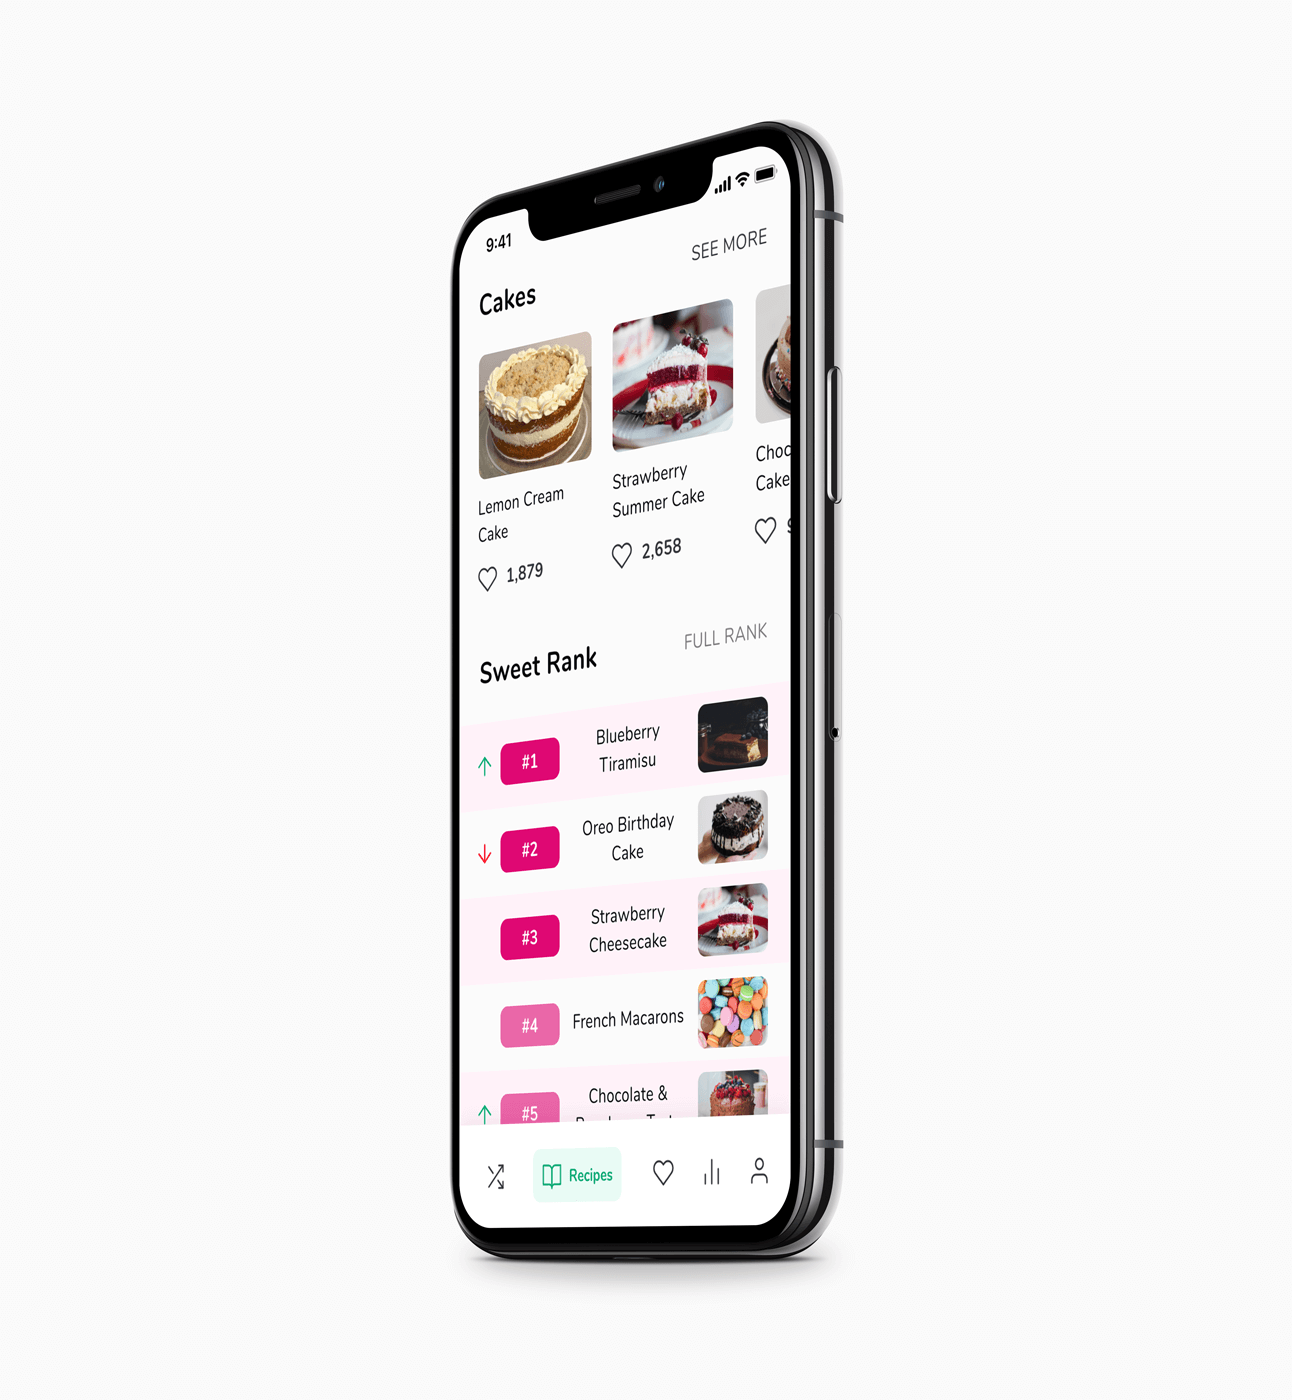 Iphone X mockup with WhatMeal app screen applied